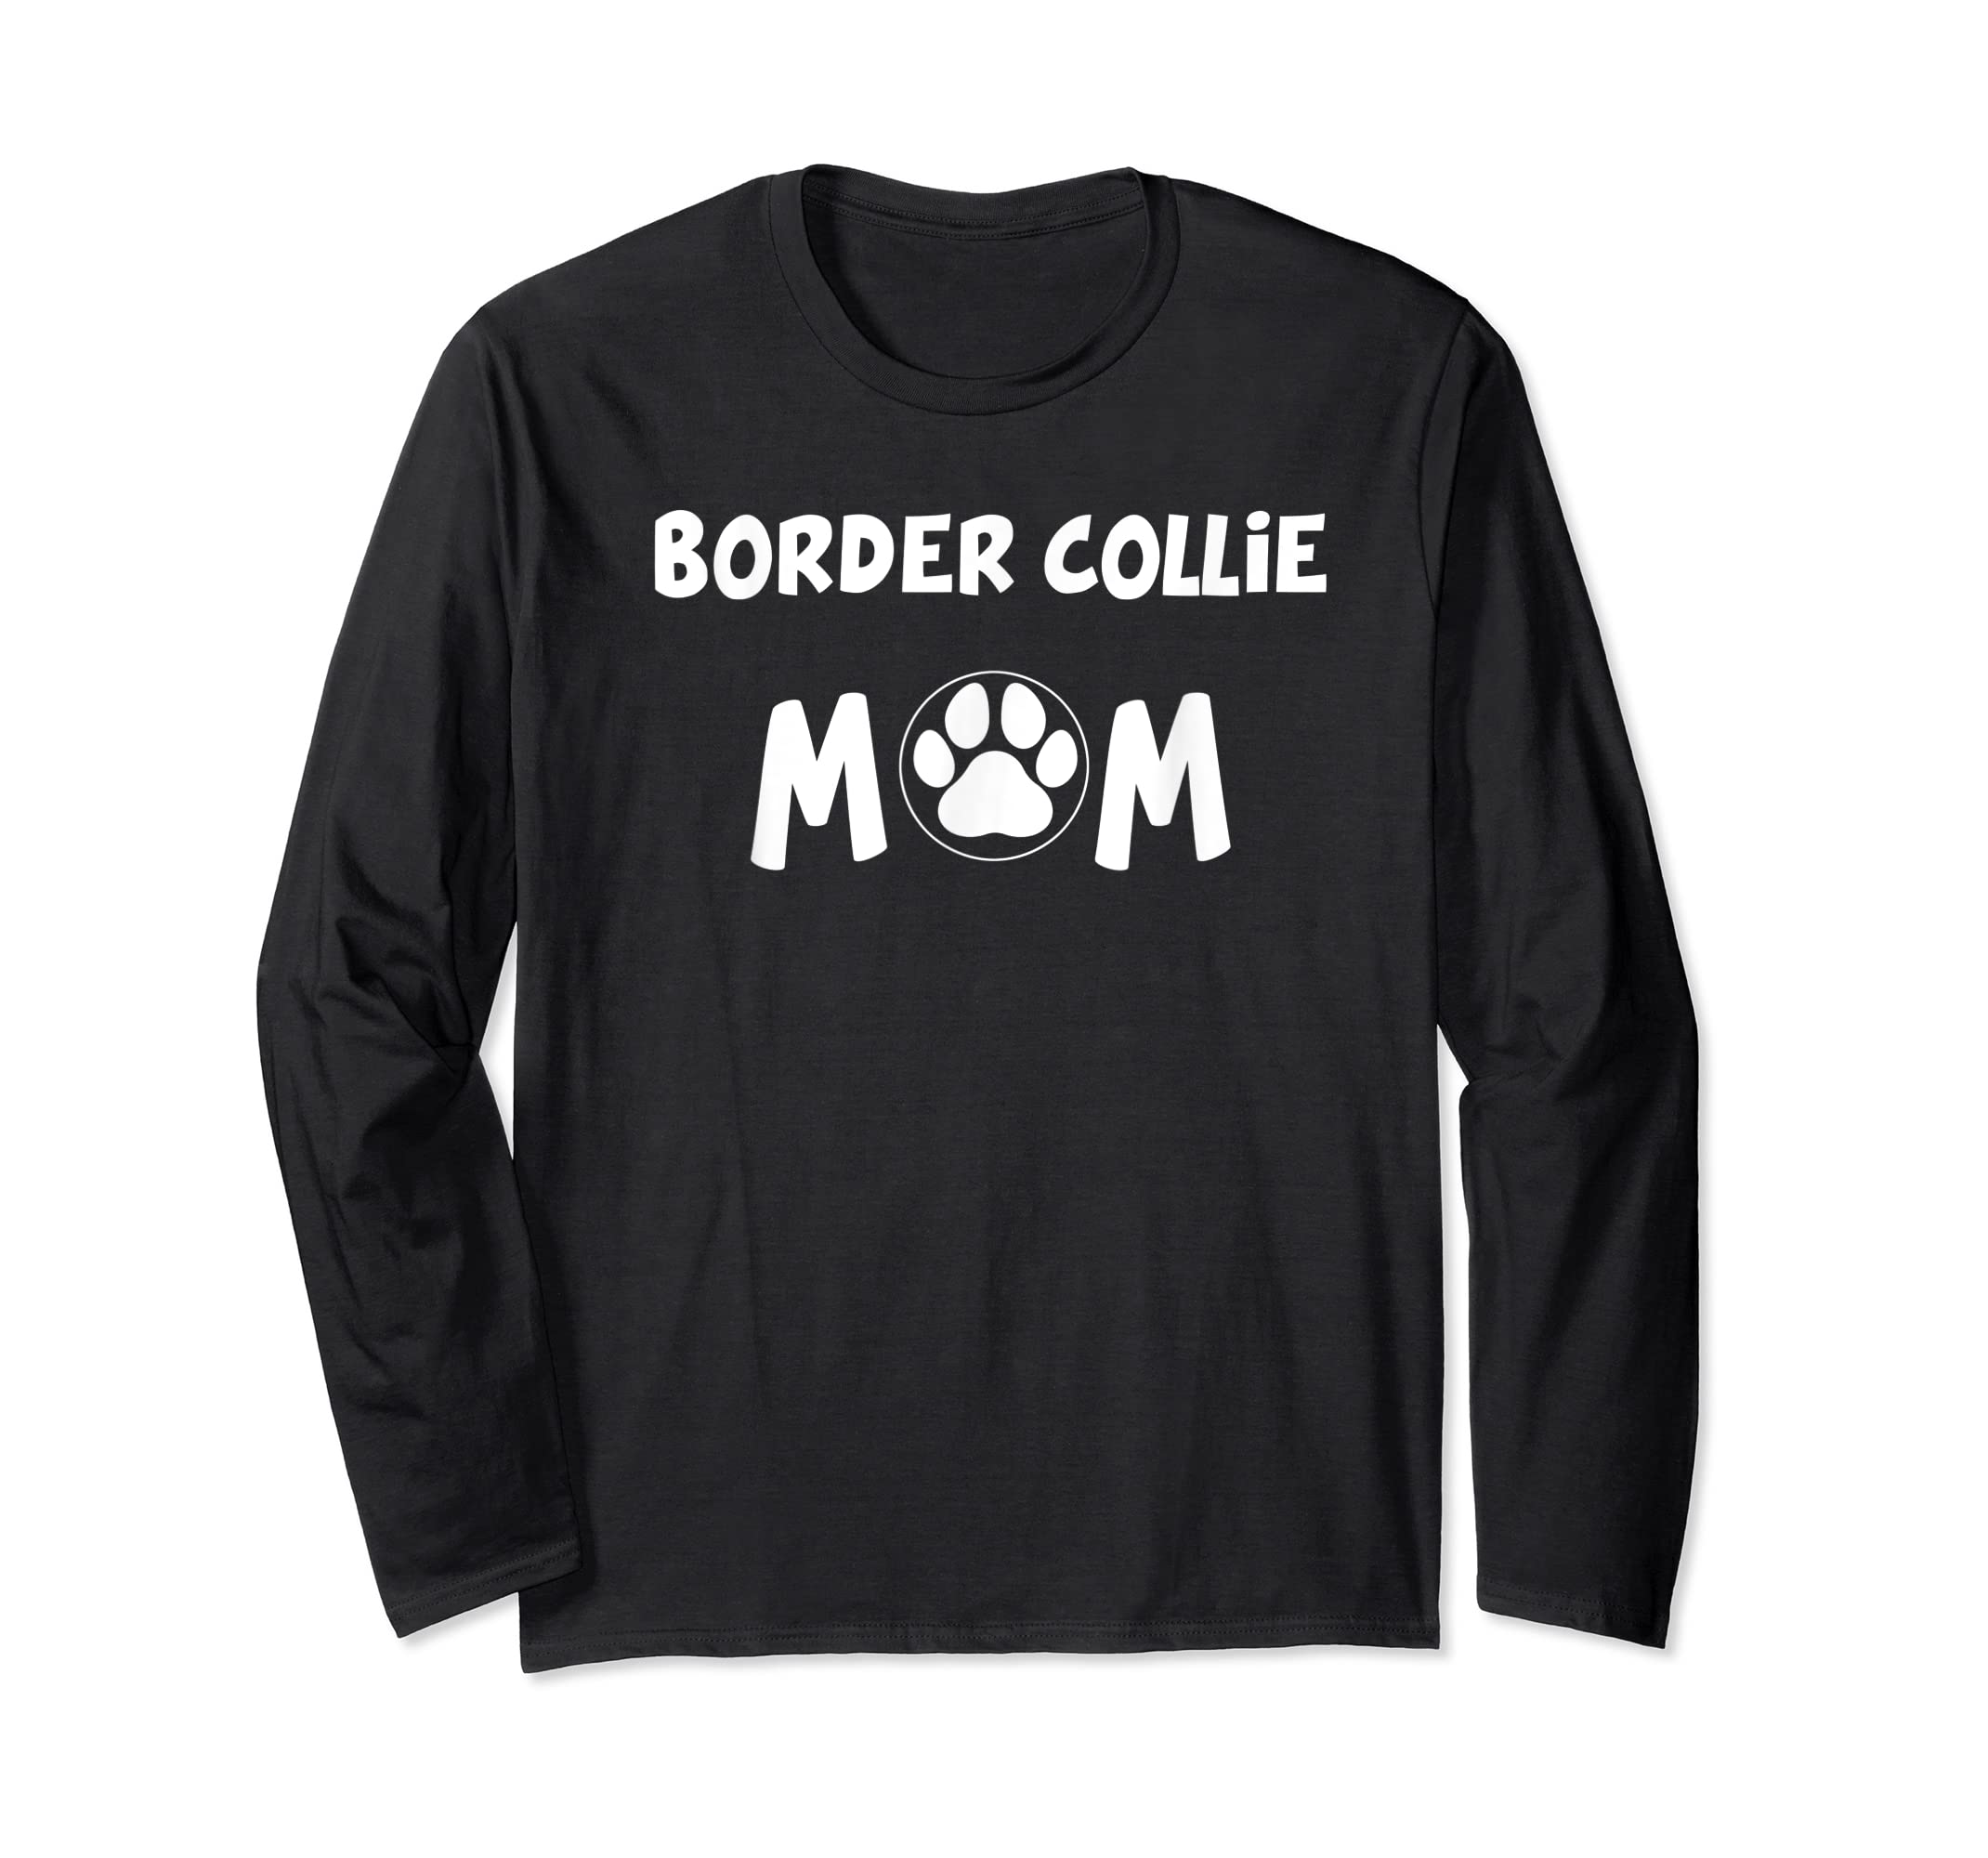 Perfect Dog Mother Gift | Border Collie Mom T-Shirt-Long Sleeve-Black